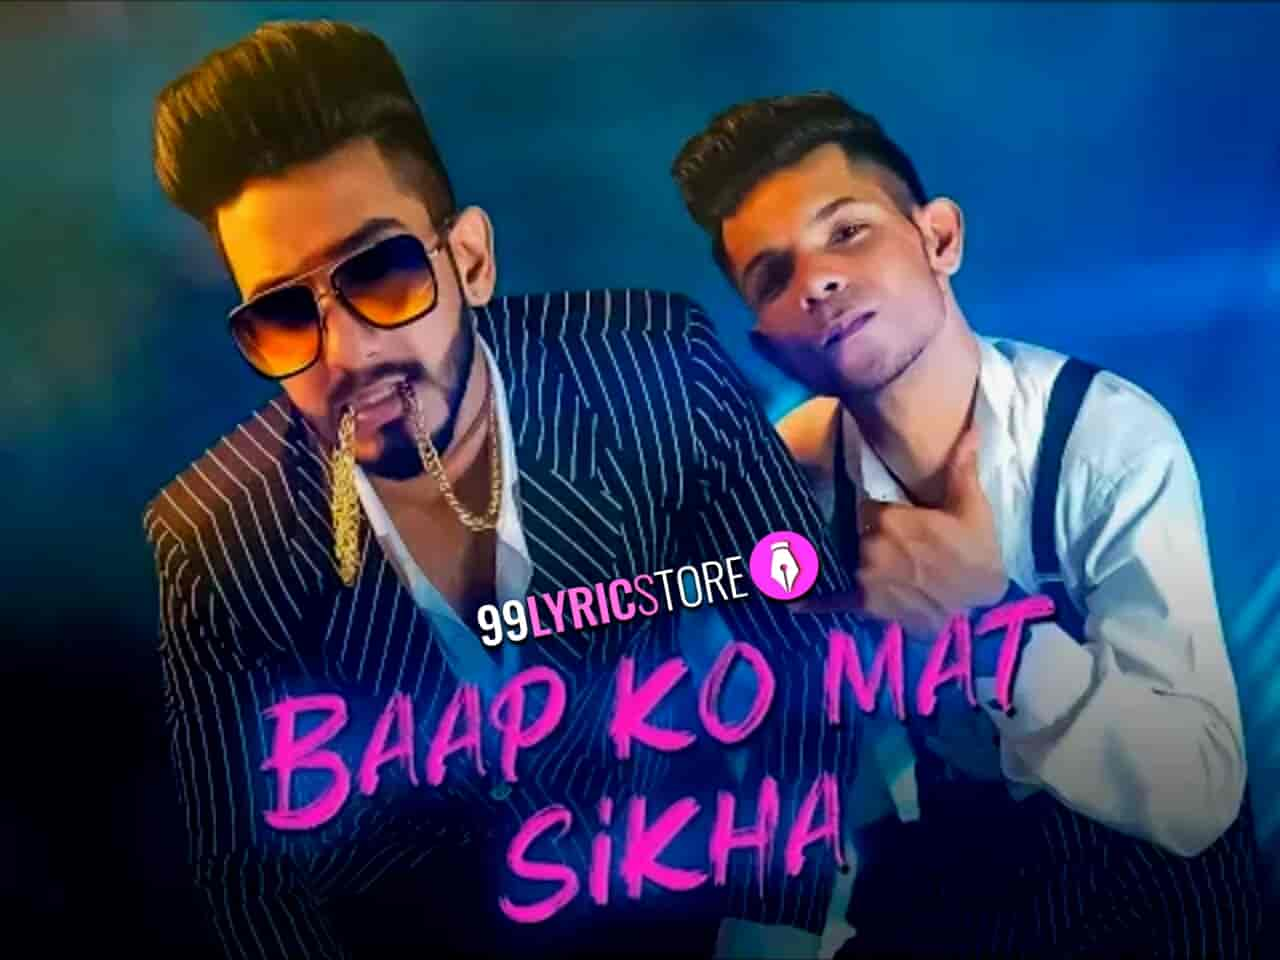 Baap Ko Mat Sikha Song Images By Nandy Tens